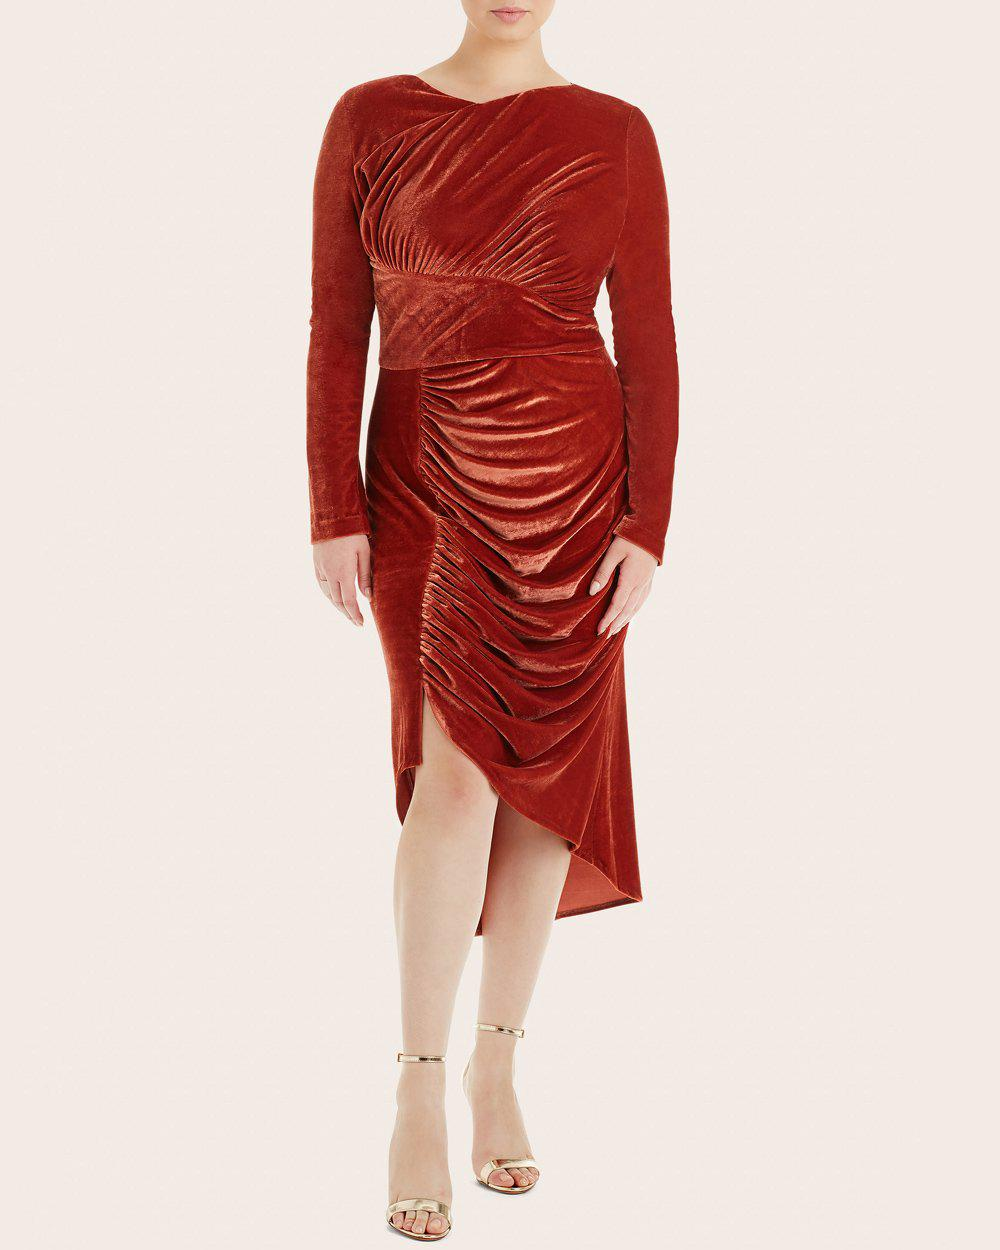 7b987338fccb7 Christian Siriano Ruched Velvet Dress in Red - Lyst